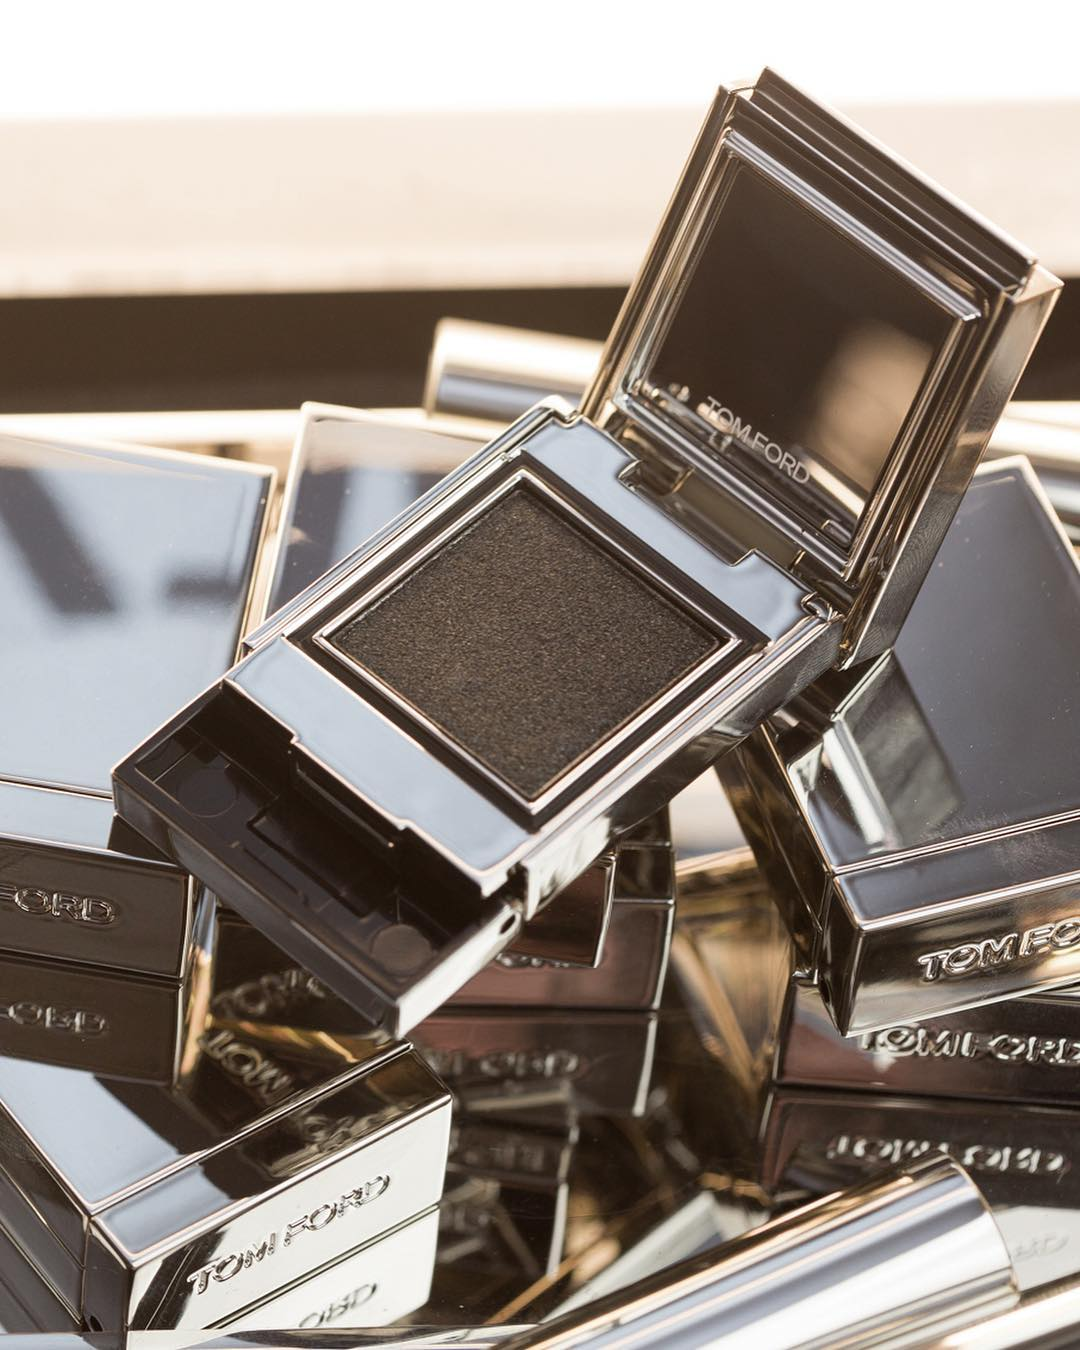 Tom-Ford-Extreme-Eyeshadow